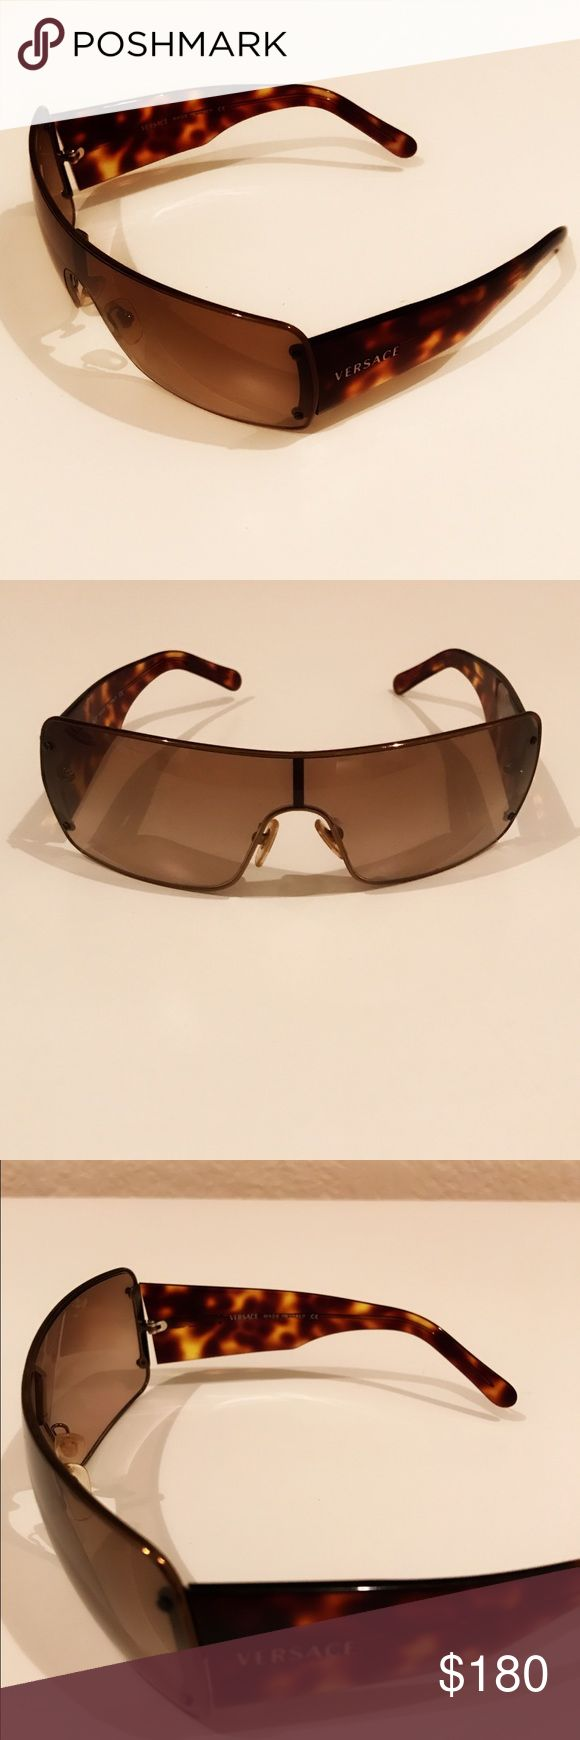 Retro Versace Sunglasses Versace Sunglasses -- they were my mom's from many years ago but they're in excellent condition. Bronze-brown shades in shield style, tortoise shell arms. Authentic, retro, vintage, hipster, classic. Versace Accessories Sunglasses